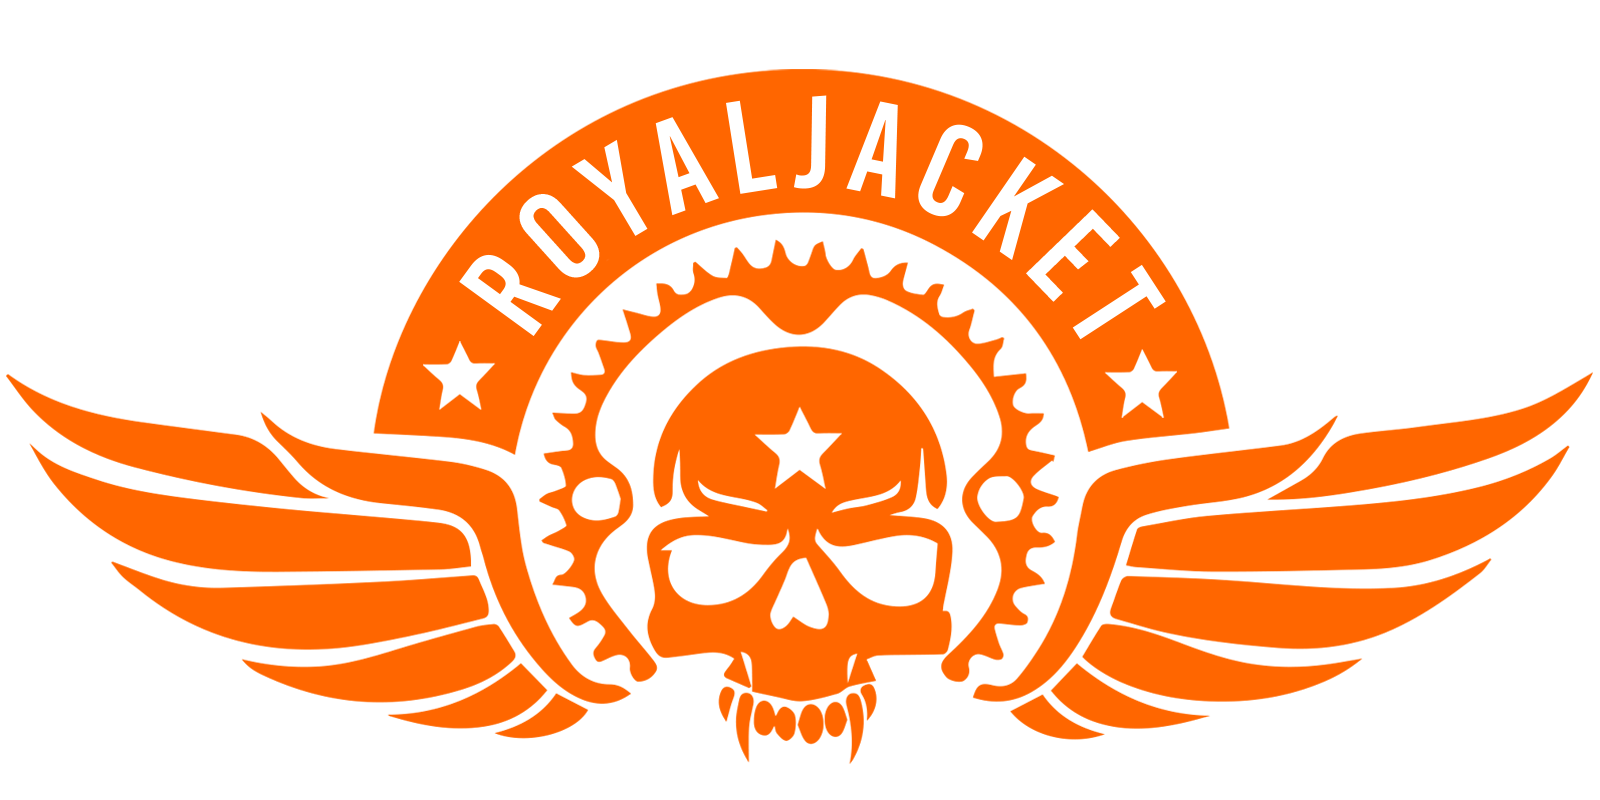 RoyalJacket.com